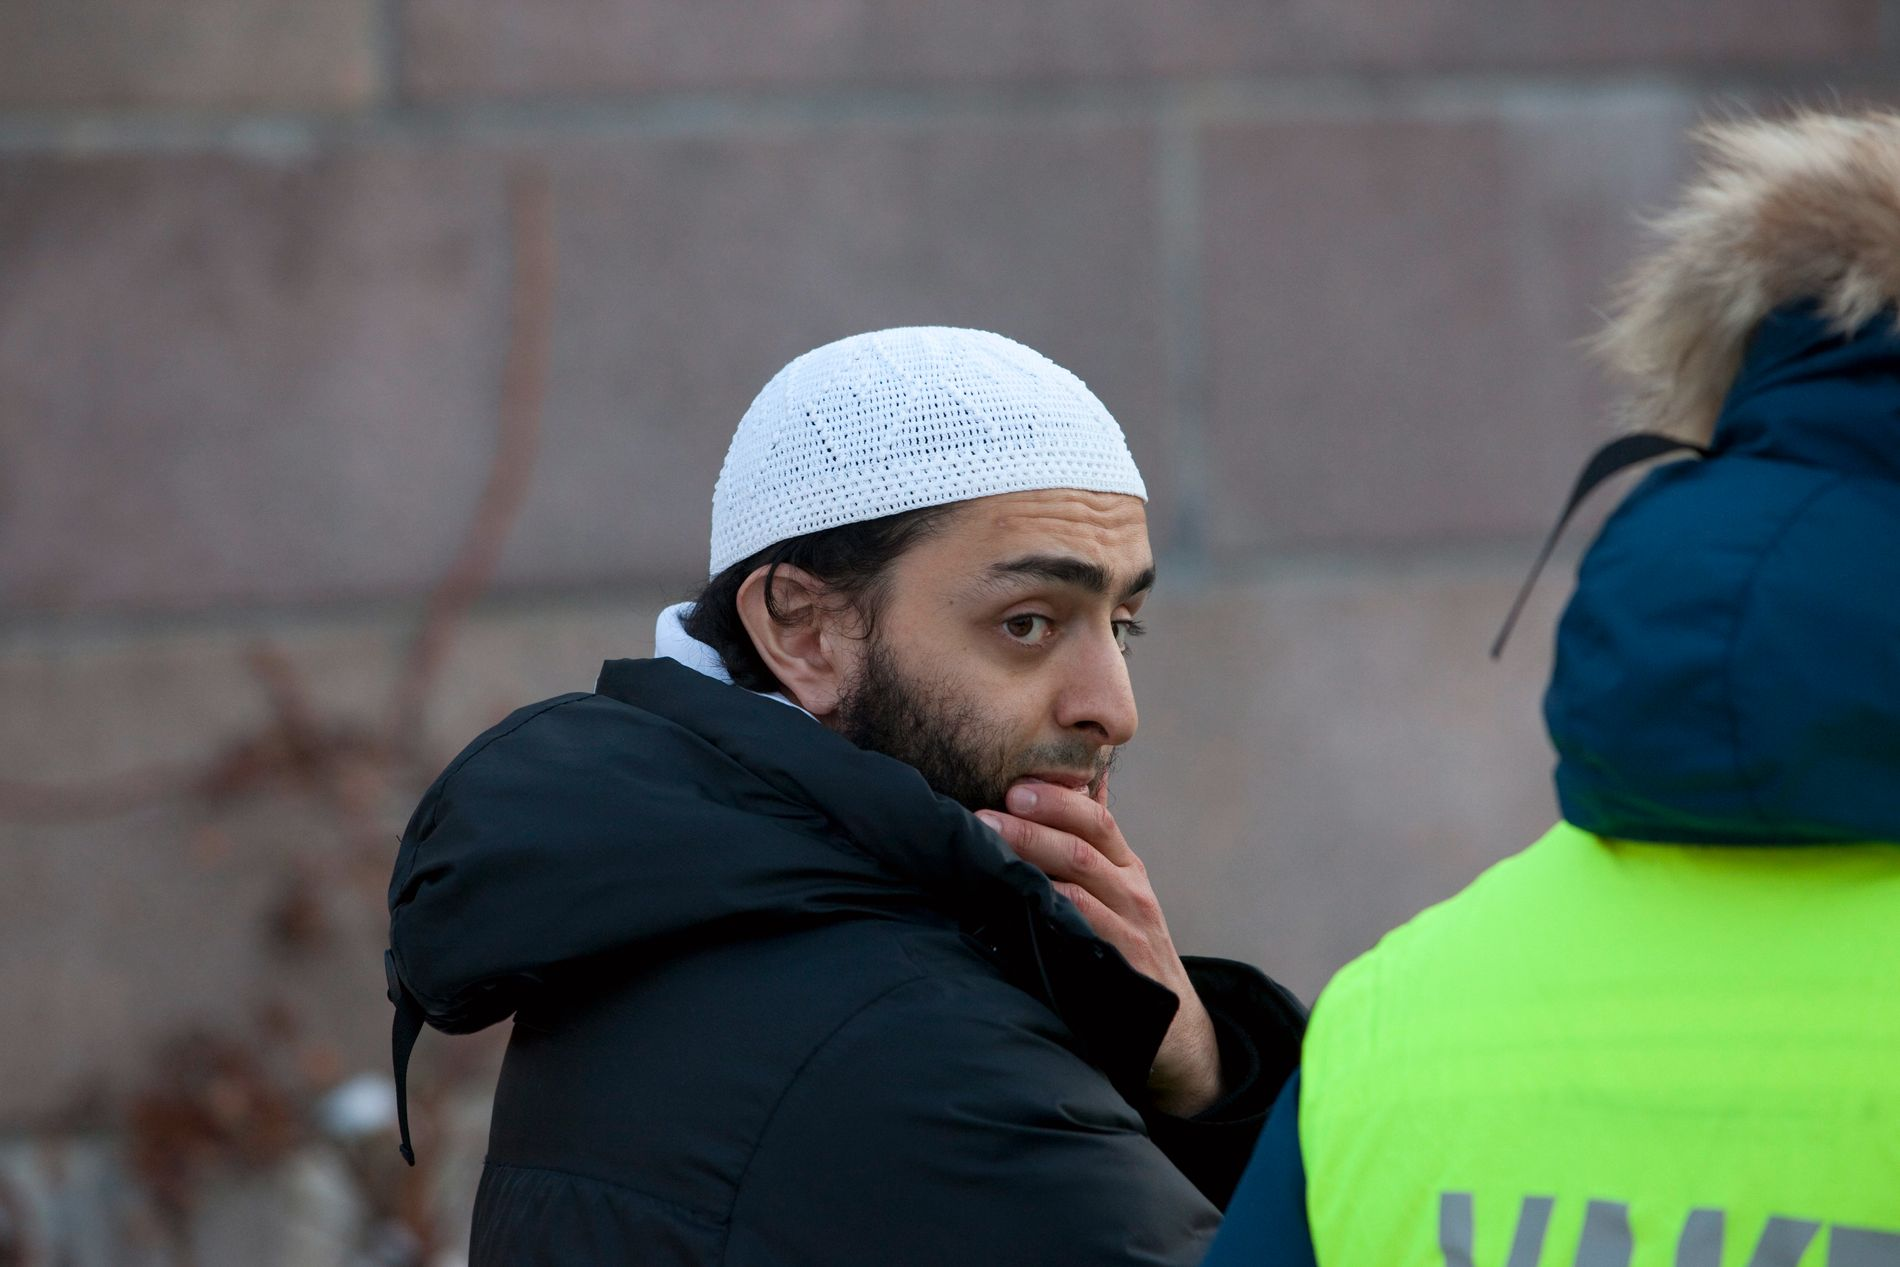 MONEY: Mohyeldeen Mohammad has to meet in court in the court of Oslo in 719, where he is accused of petrol thieves.